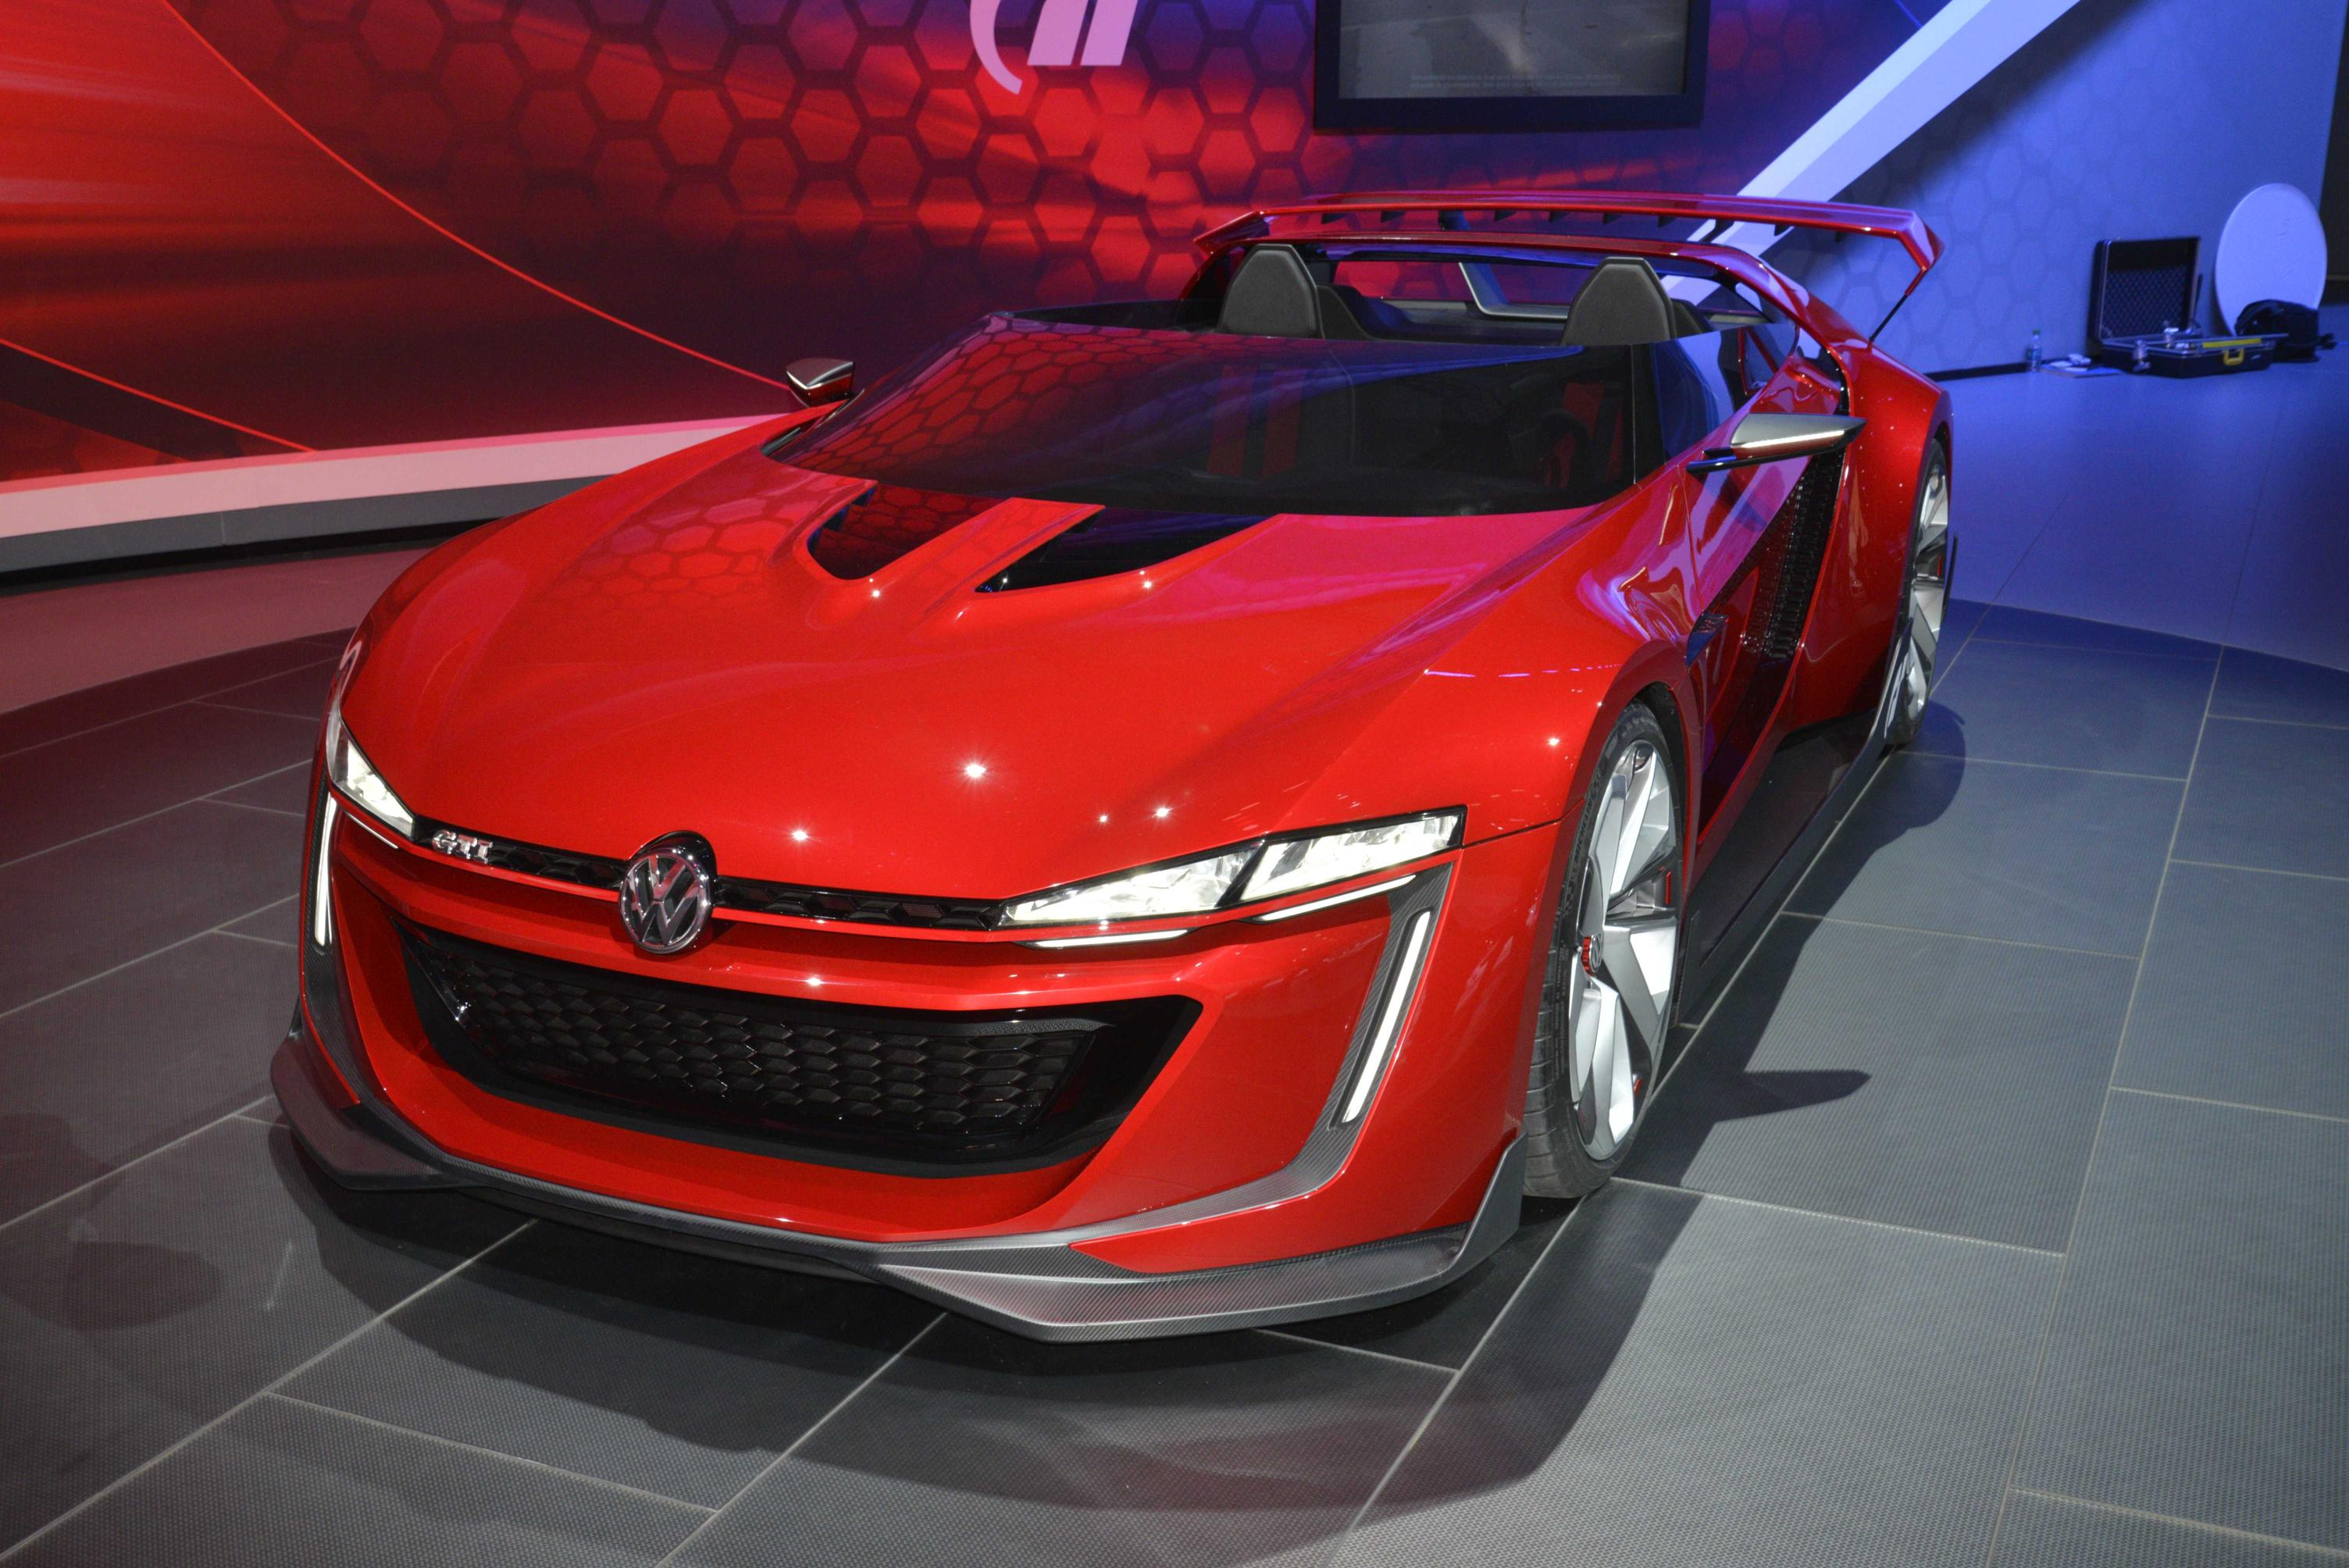 Golf GTI Roadster Makes Debut in LA Needs to Go into Production